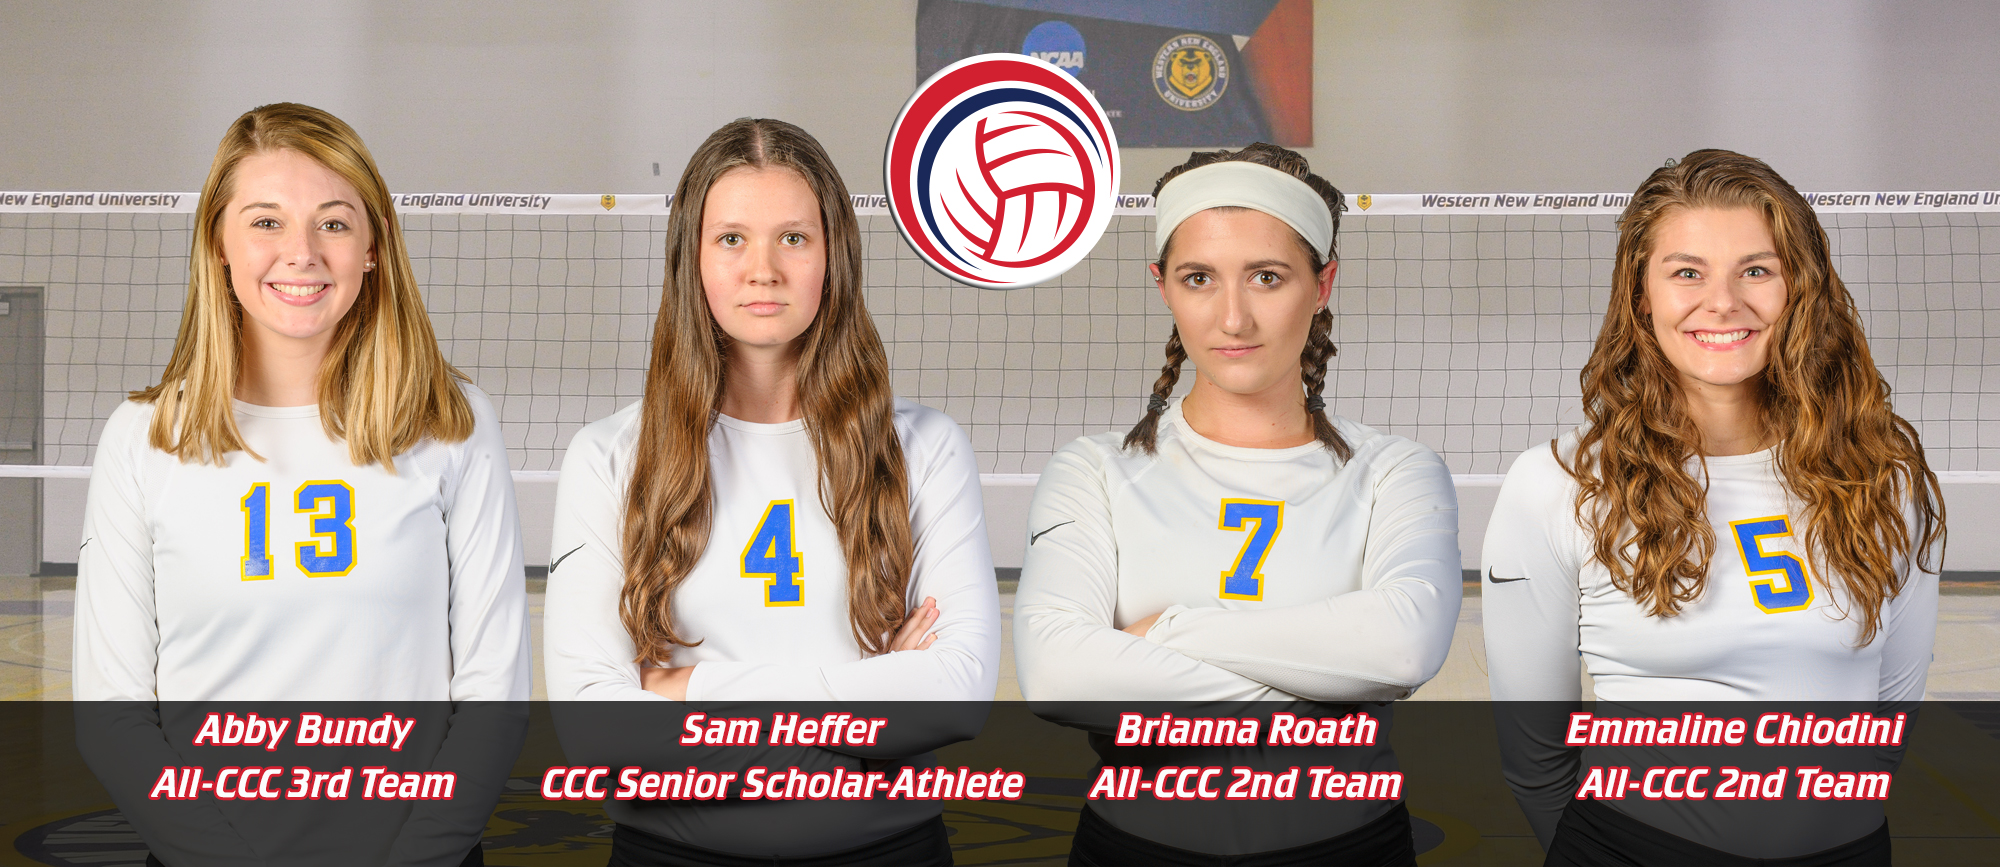 Heffer Named CCC Senior Scholar Athlete; Three Golden Bears Earn All-CCC Honors